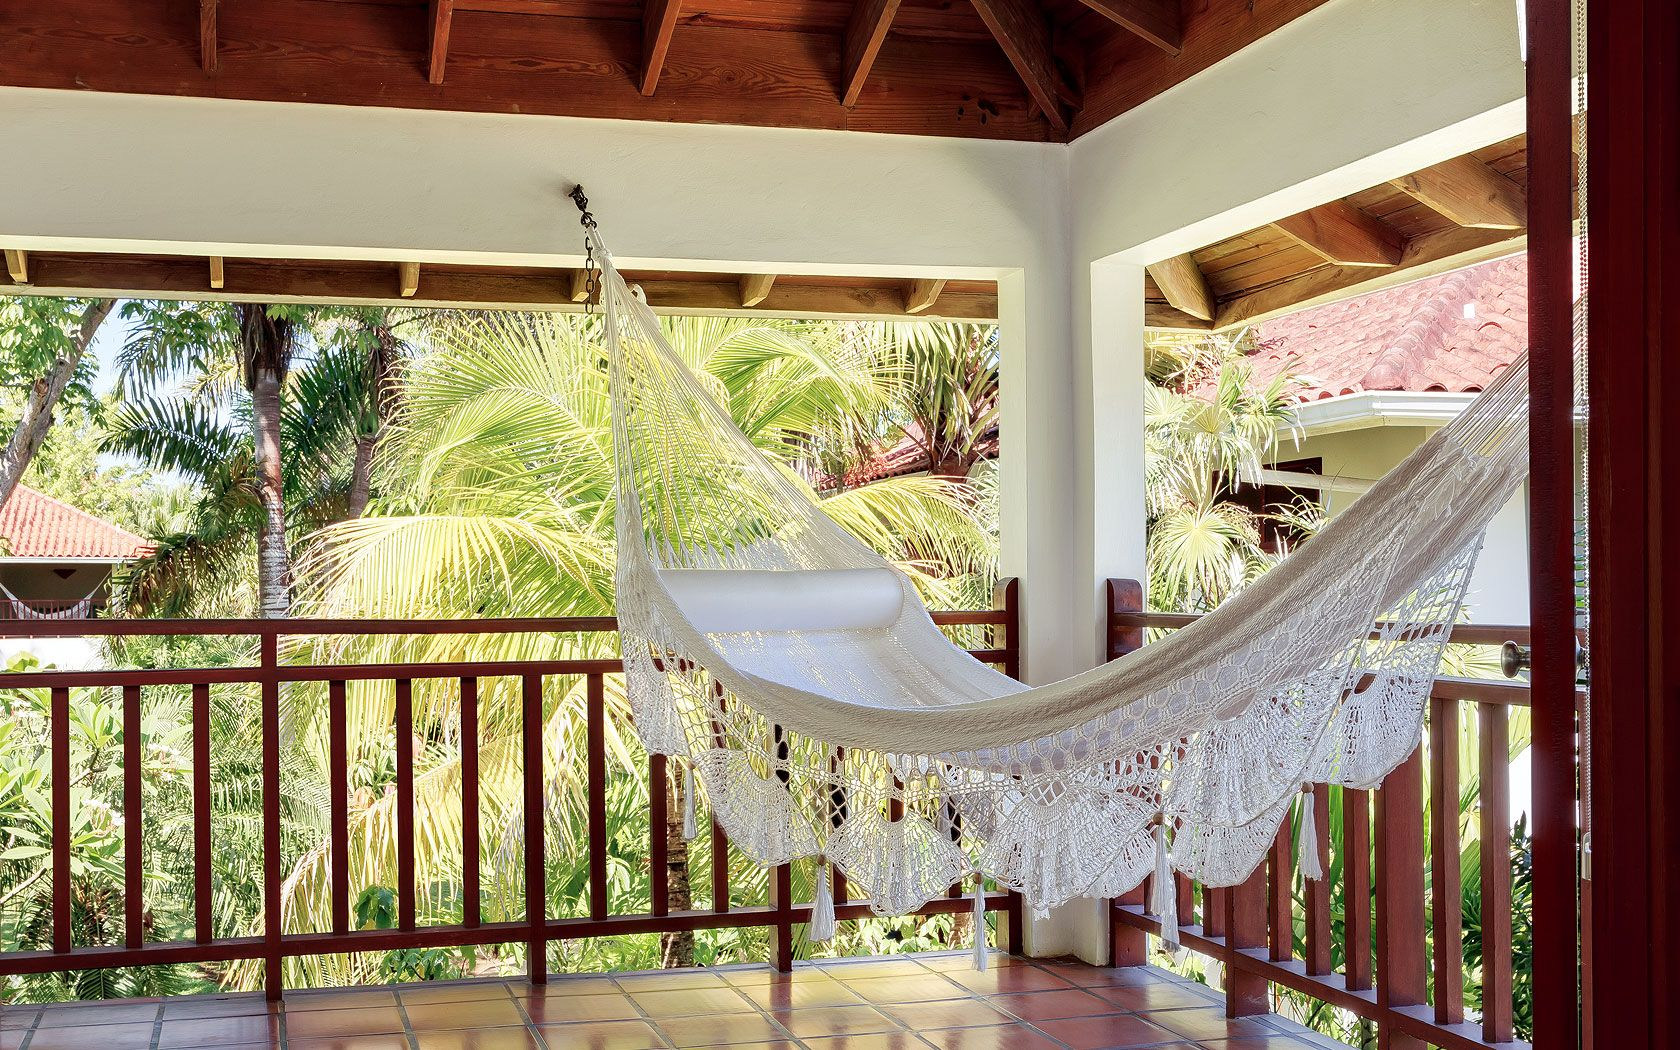 I M Digging The Hammock And Lush Foliage Atrium Suite Couples Swept Away Negril Couples Swept Away Jamaica Resorts Resort